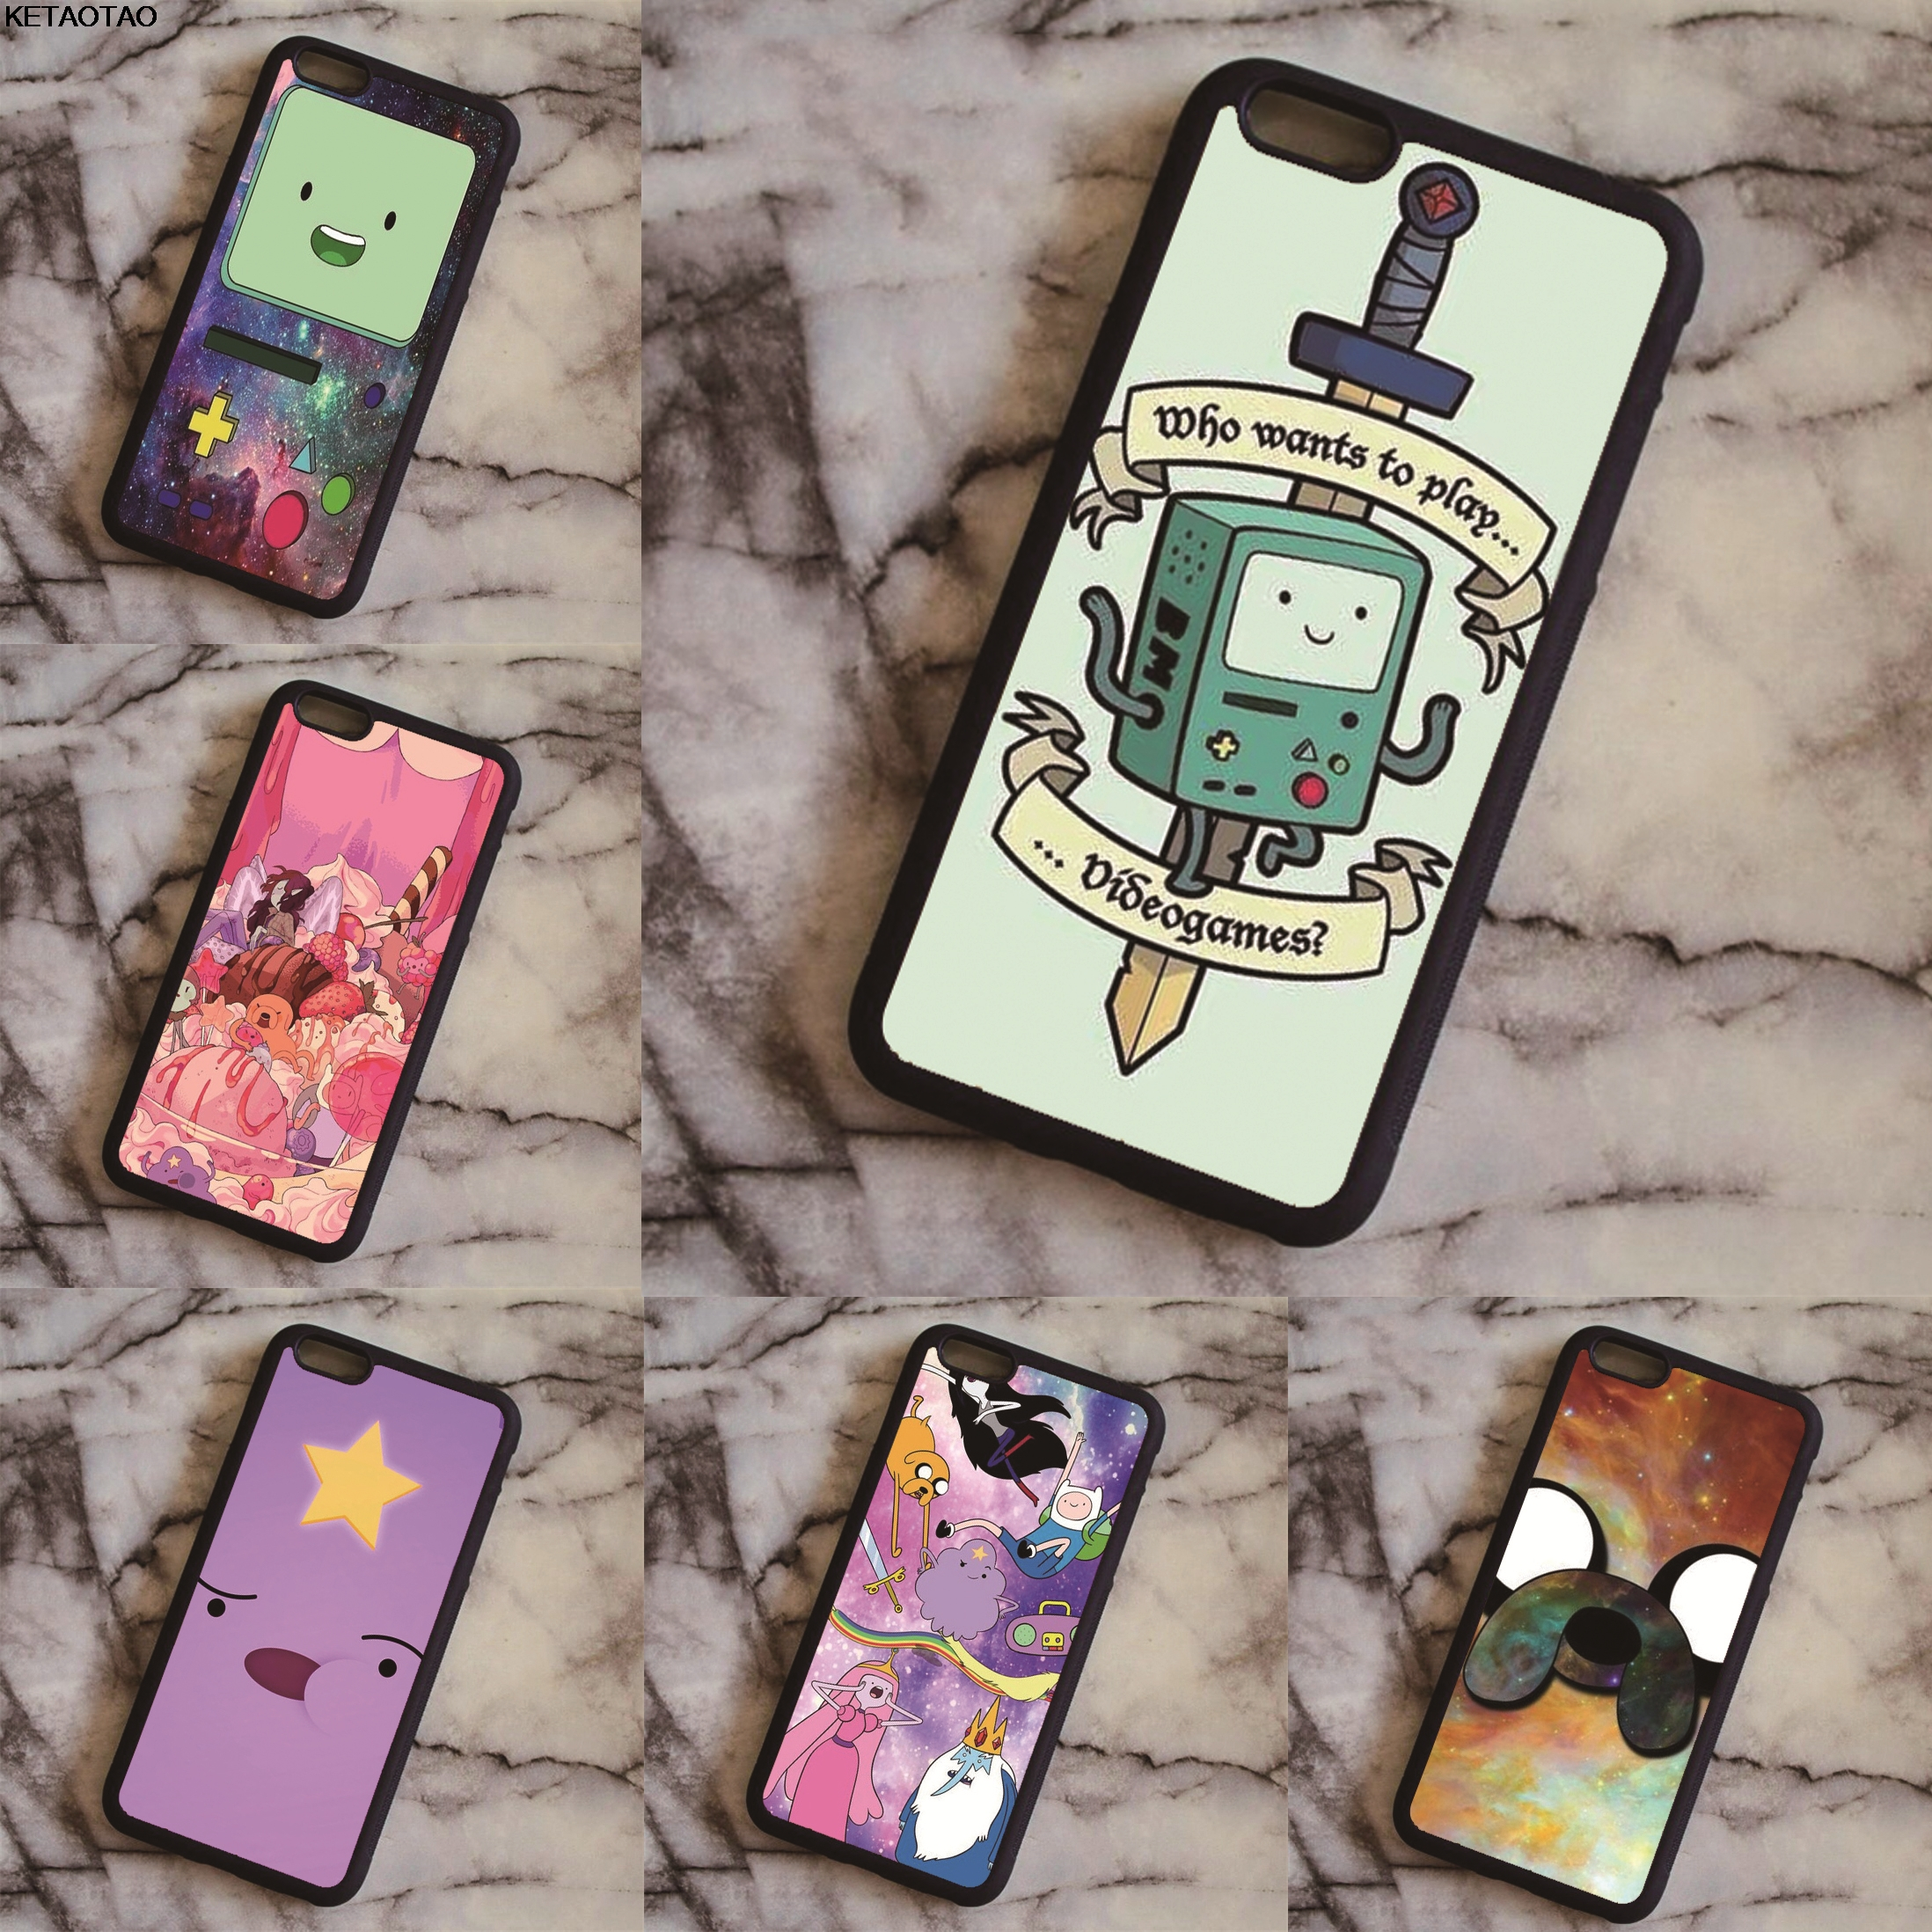 ketaotao-adventure-time-font-b-pokemons-b-font-phone-cases-for-samsung-s3-s4-s5-s6-s7-s8-s9-note-4-5-7-8-case-soft-tpu-rubber-silicone